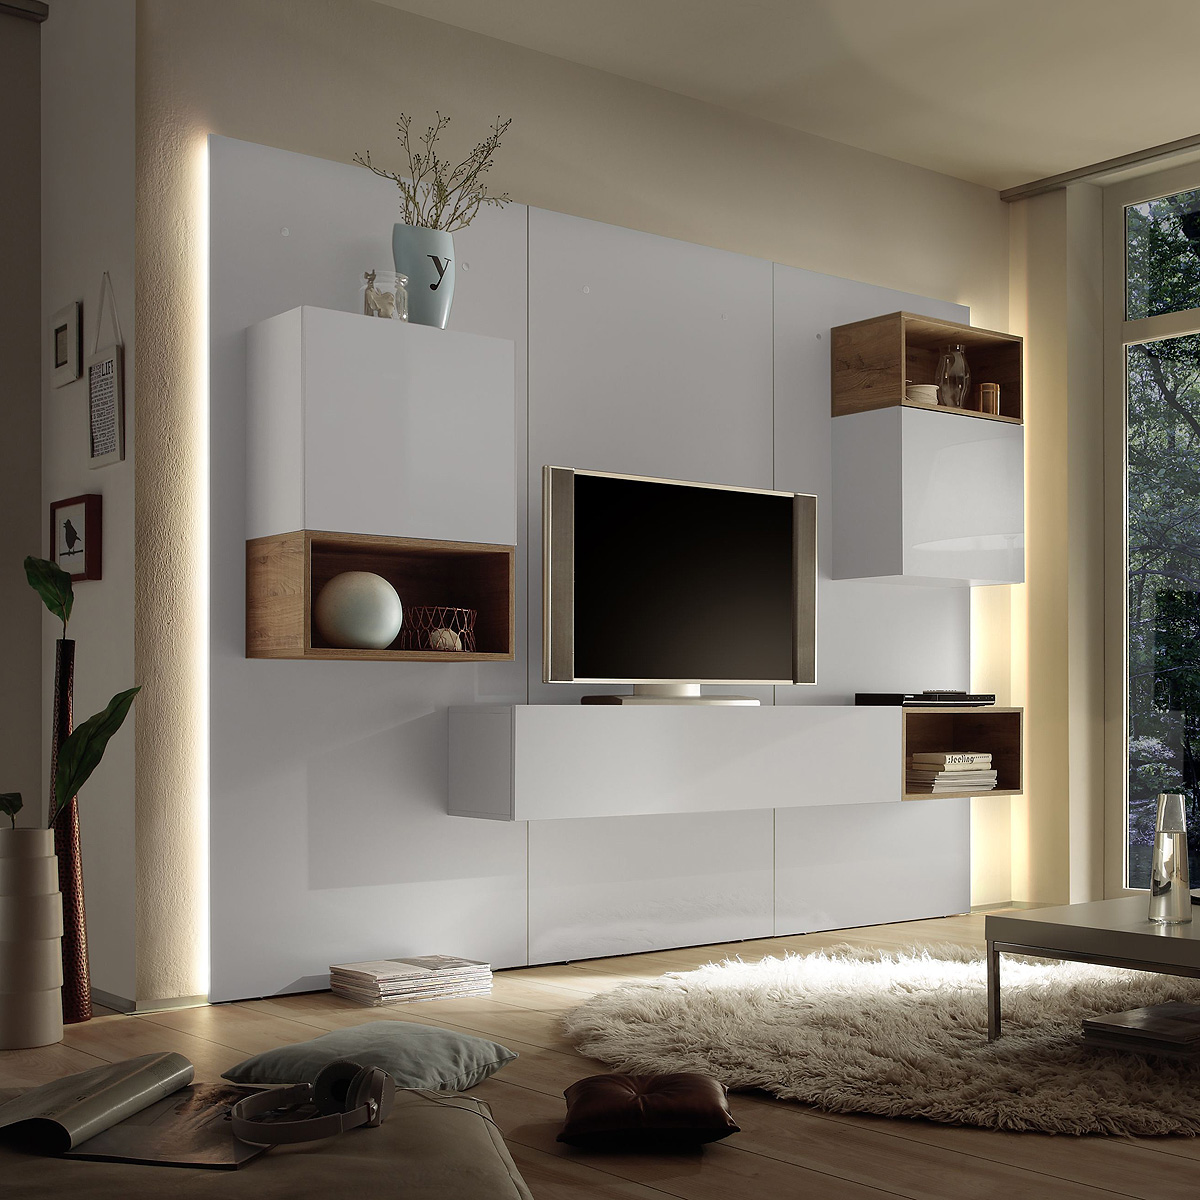 wohnwand cube 2 kombi 3 anbauwand wohnkombi wei hochglanz. Black Bedroom Furniture Sets. Home Design Ideas